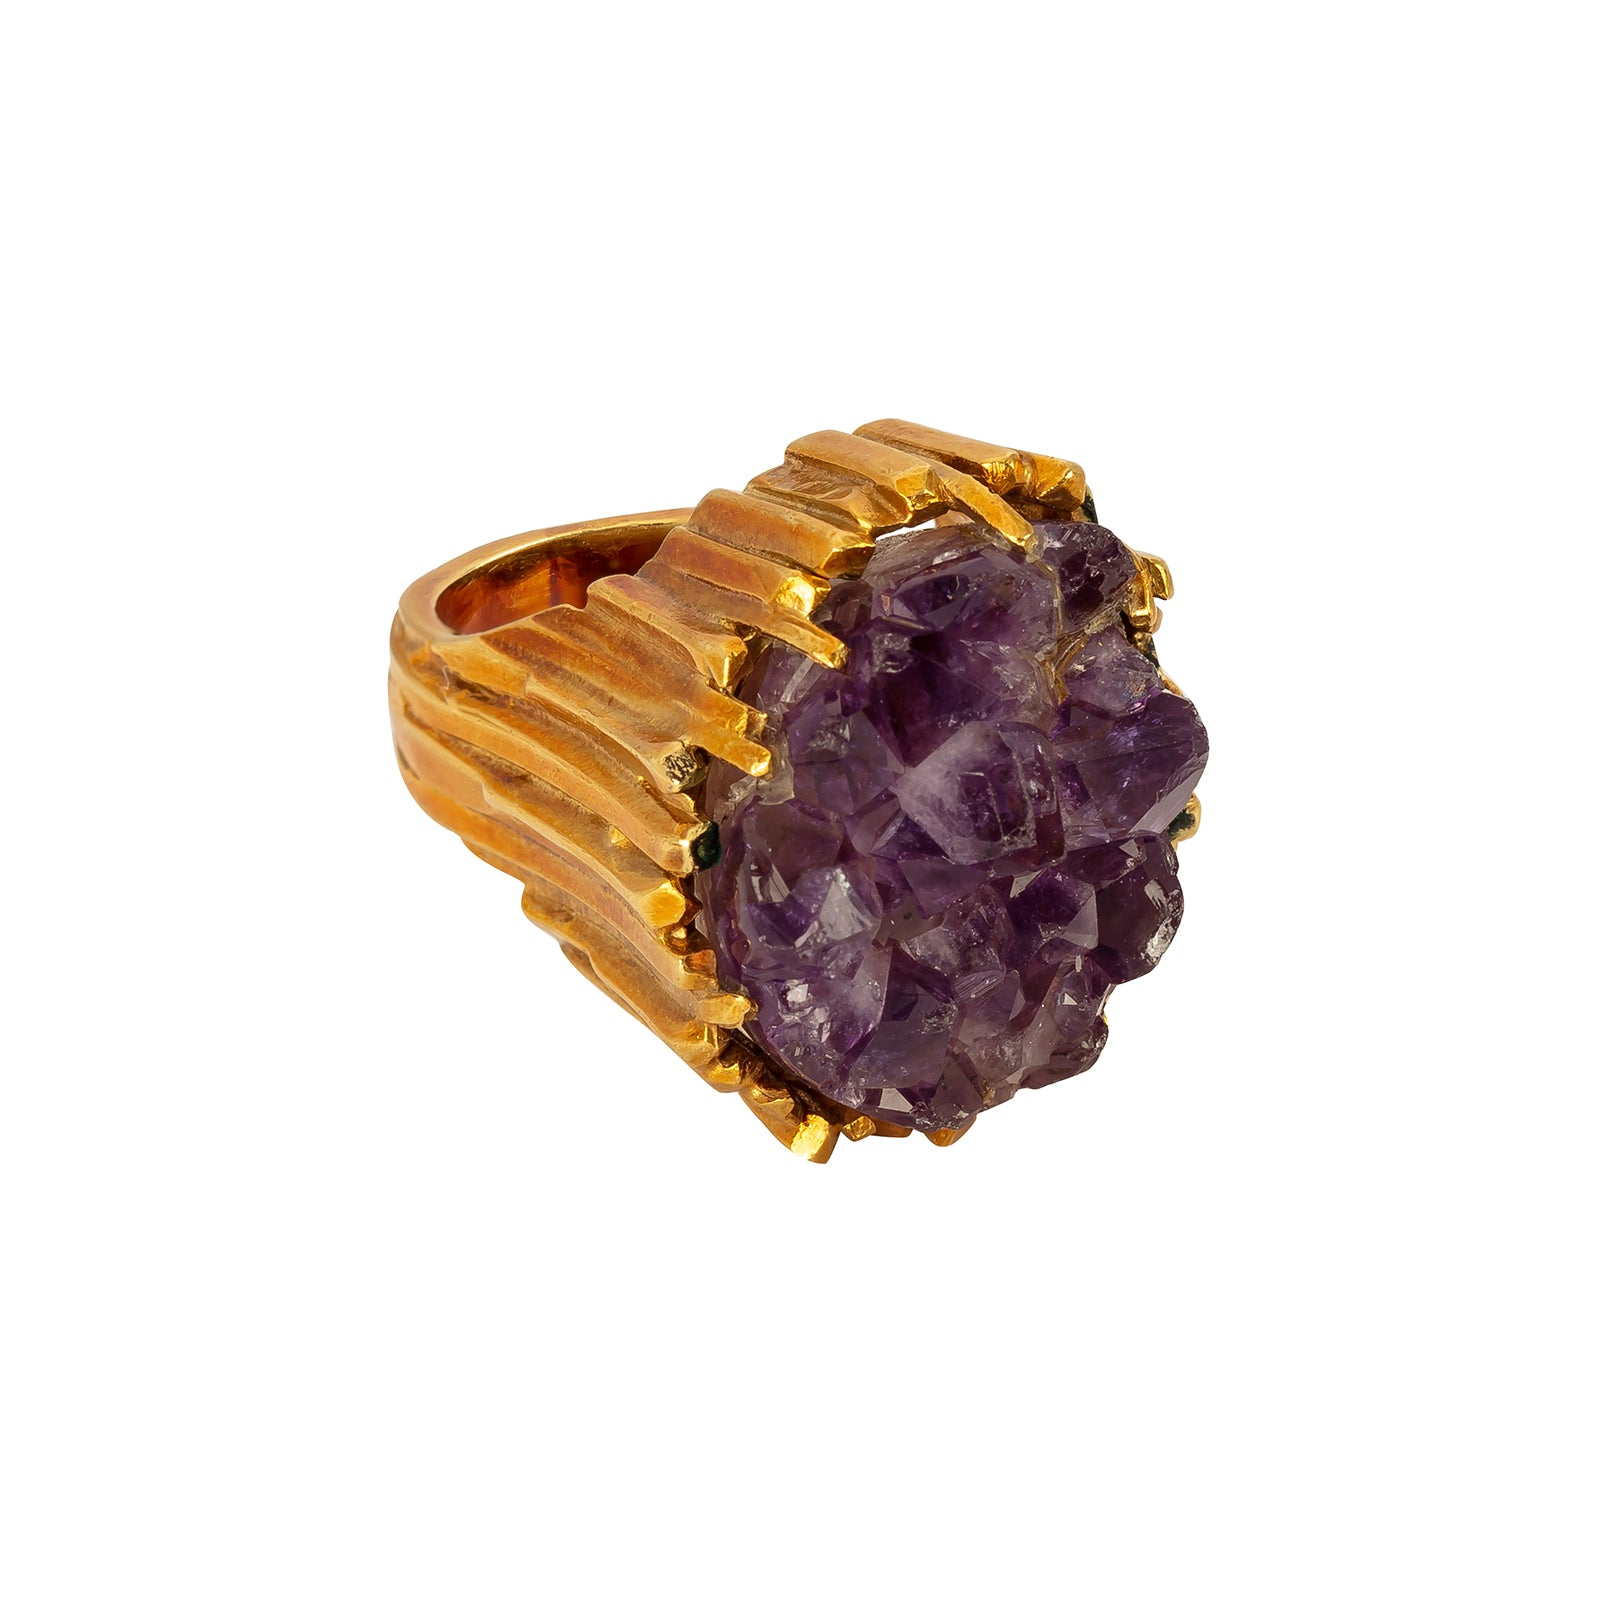 Antique & Vintage Jewelry Raw Amethyst Ring - Rings - Broken English Jewelry